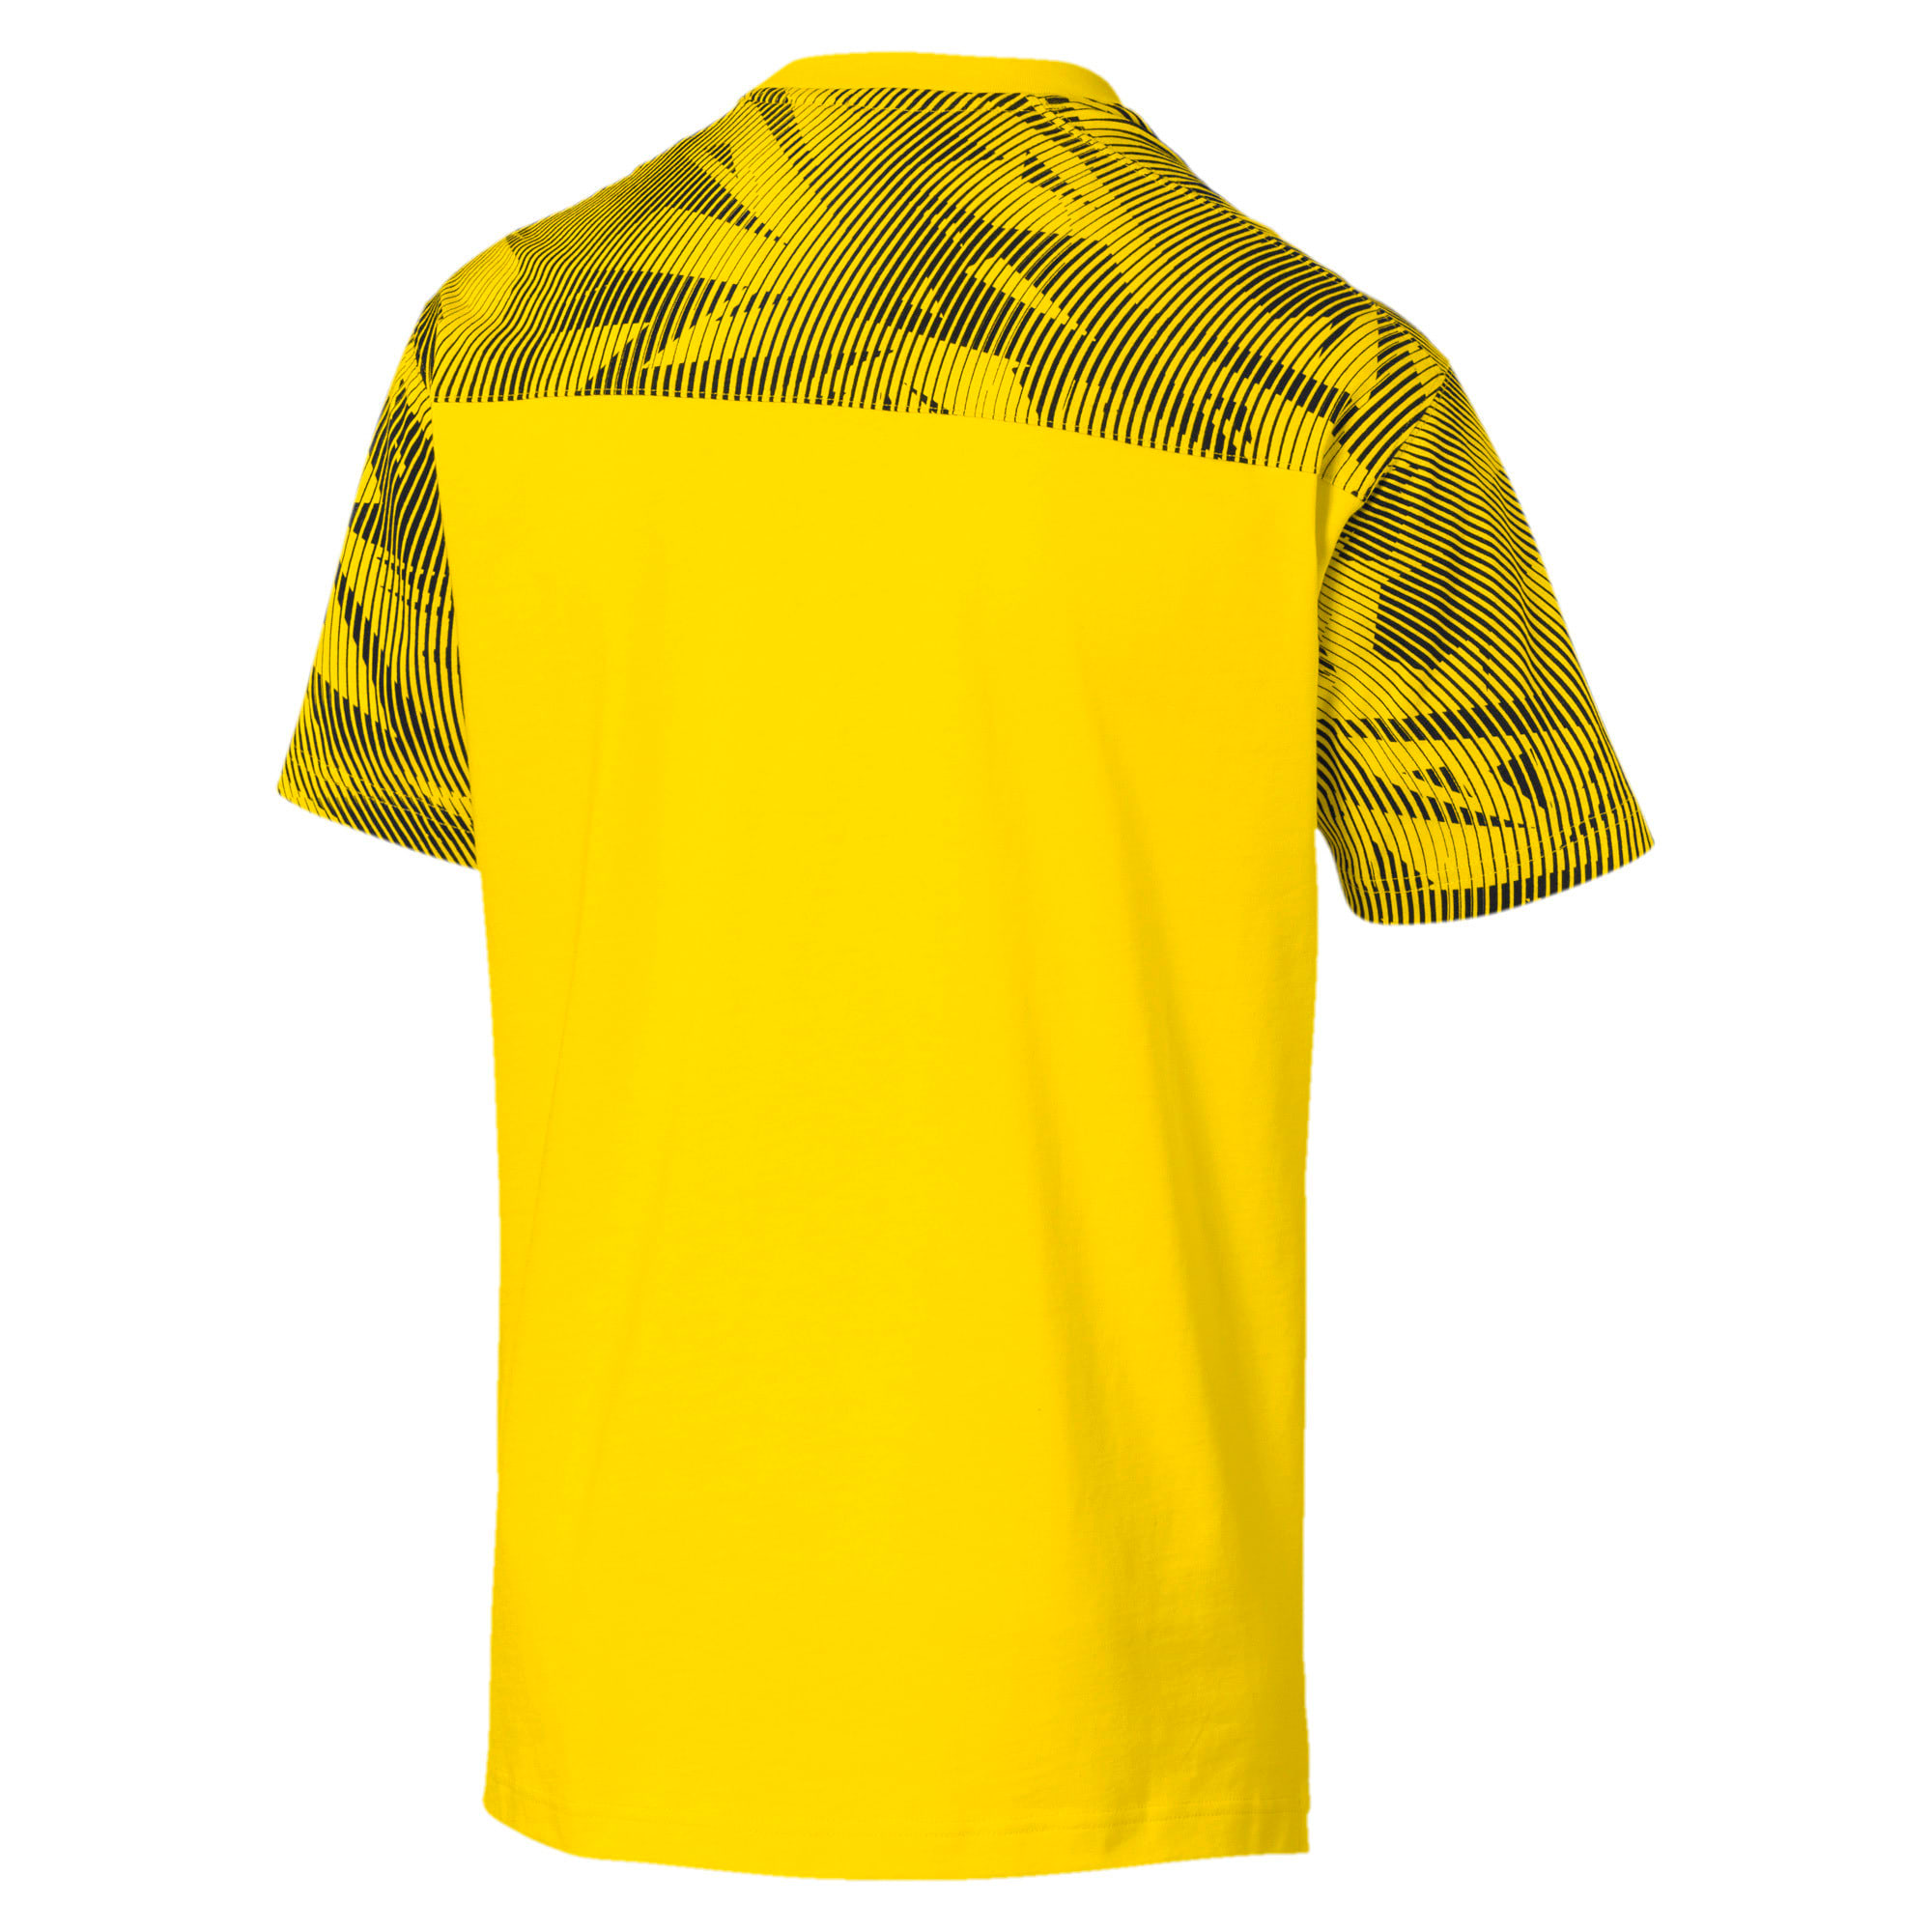 Thumbnail 5 of BVB Casuals Men's Tee, Cyber Yellow-Puma Black, medium